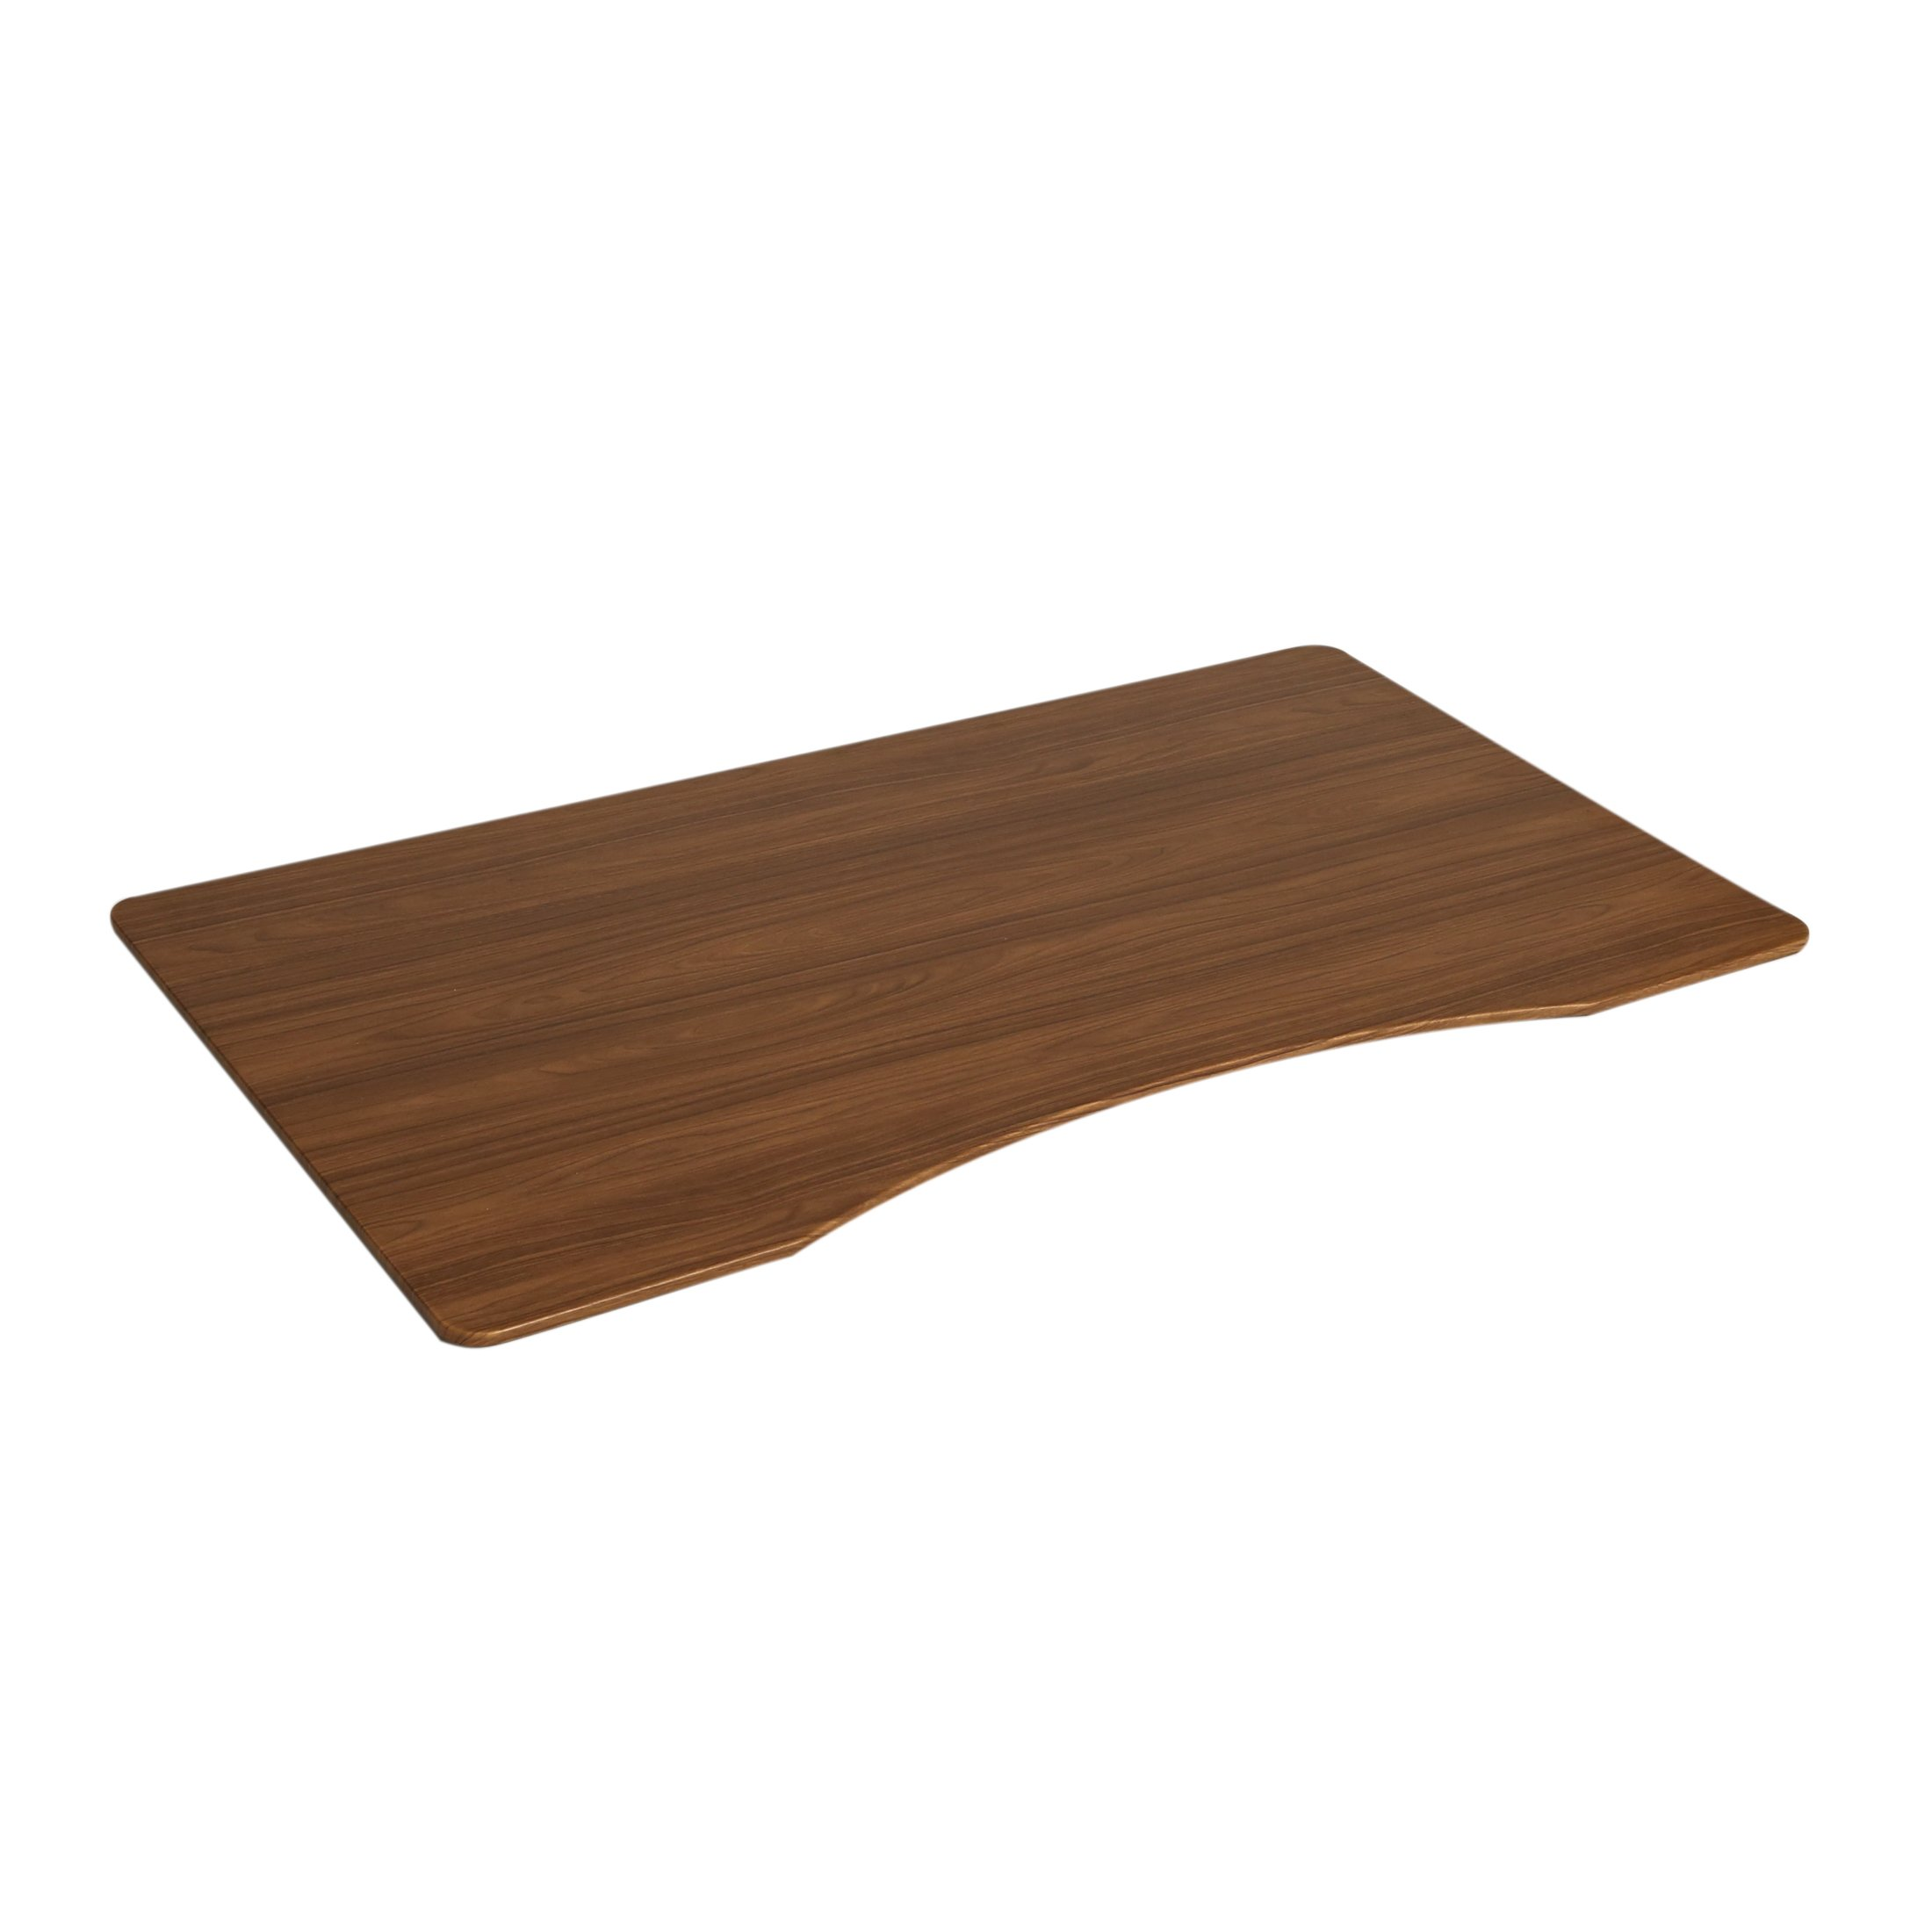 Seville Classics Ergo Desk Table Top with Beveled Bottom Edges, 54'' x 30'', Walnut